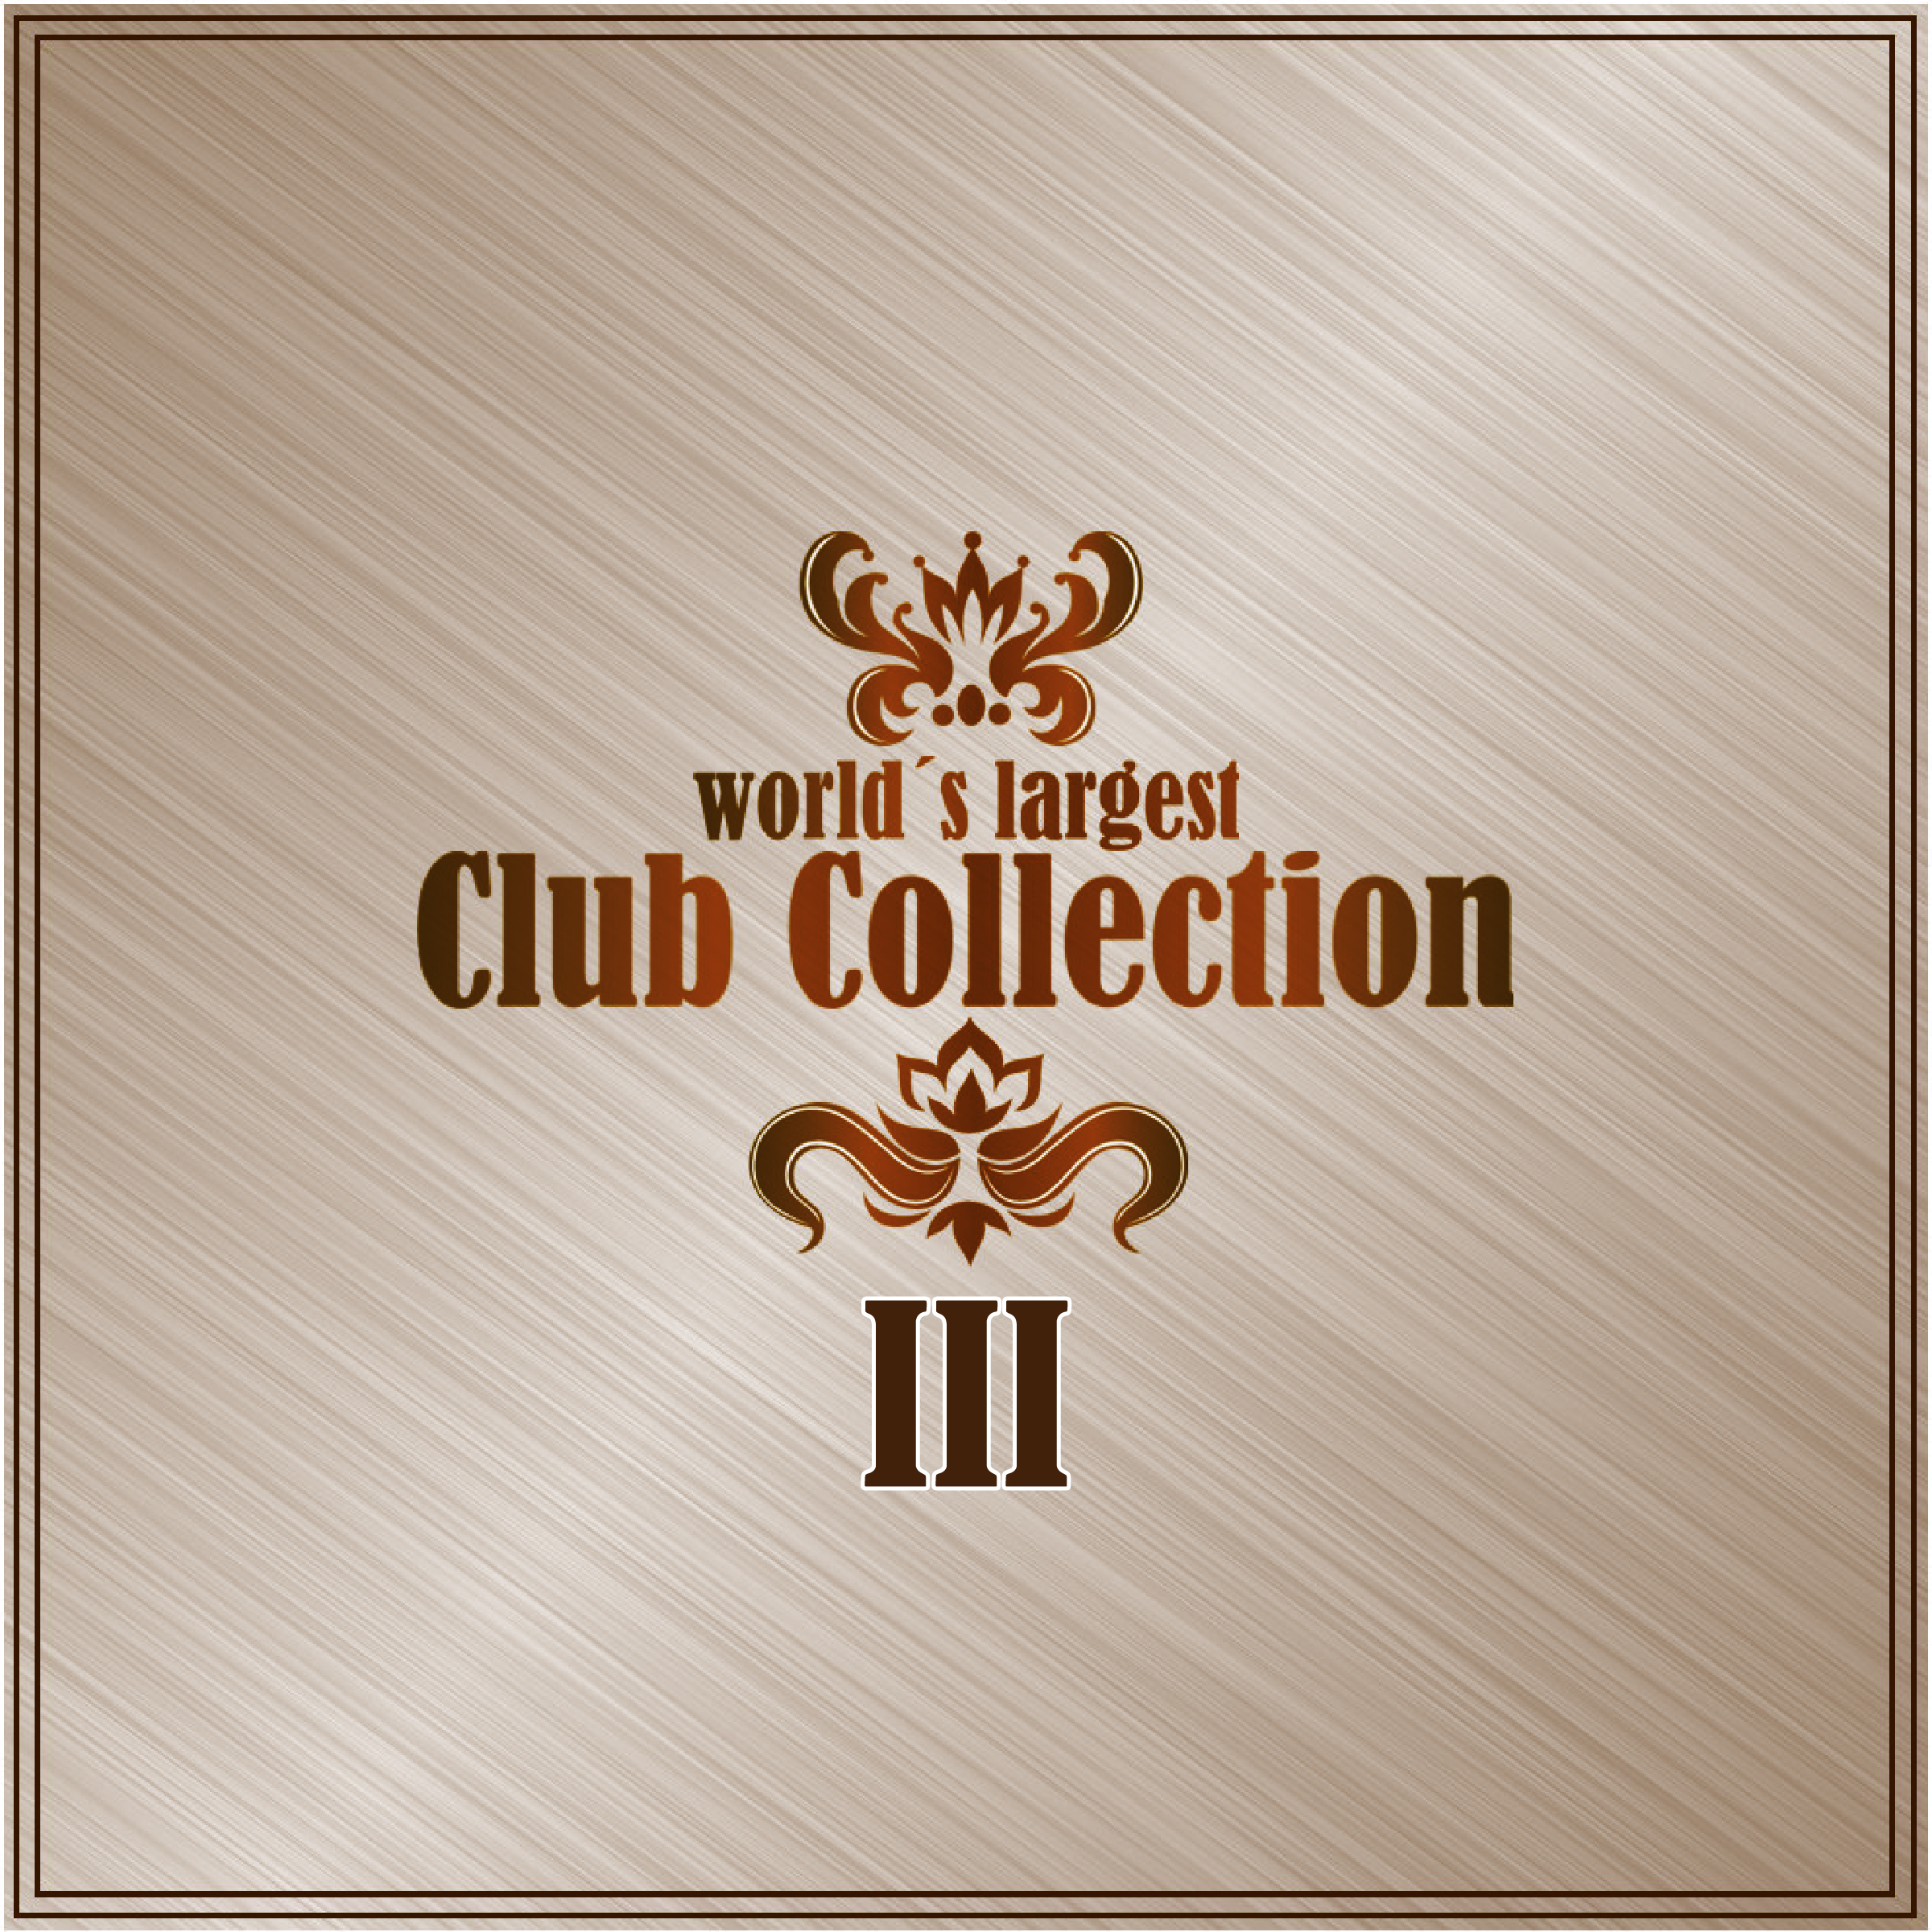 world's largest club collection 3